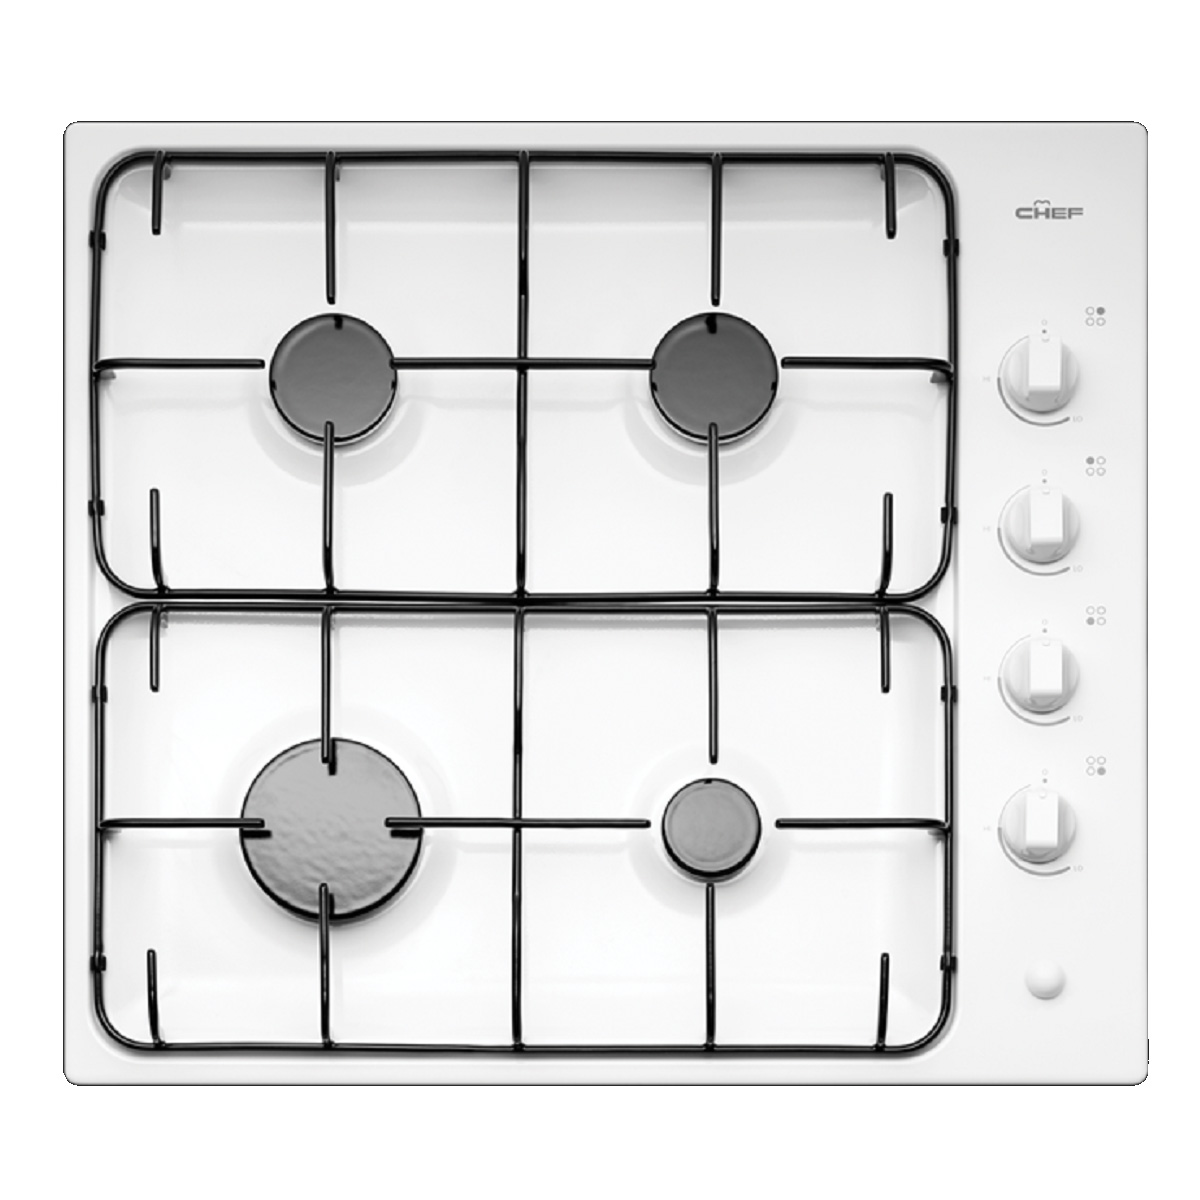 Chef Gas Cooktop GHS607W